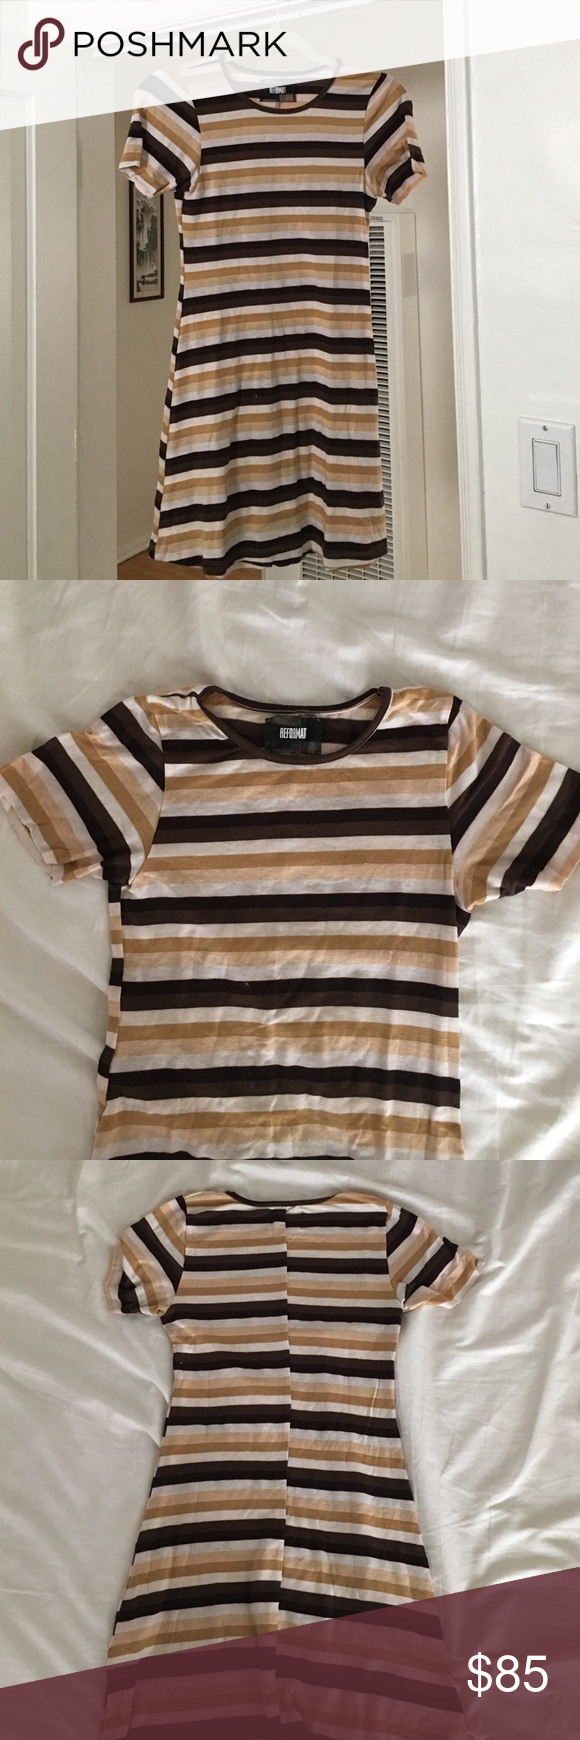 Reformation striped t shirt dress xs Such a cute lil dress. SUPER soft, can be worn casual or dressed up a bit with some kitten heels and a trench coat in the fall. Worn once. Size xs Reformation Dresses Mini